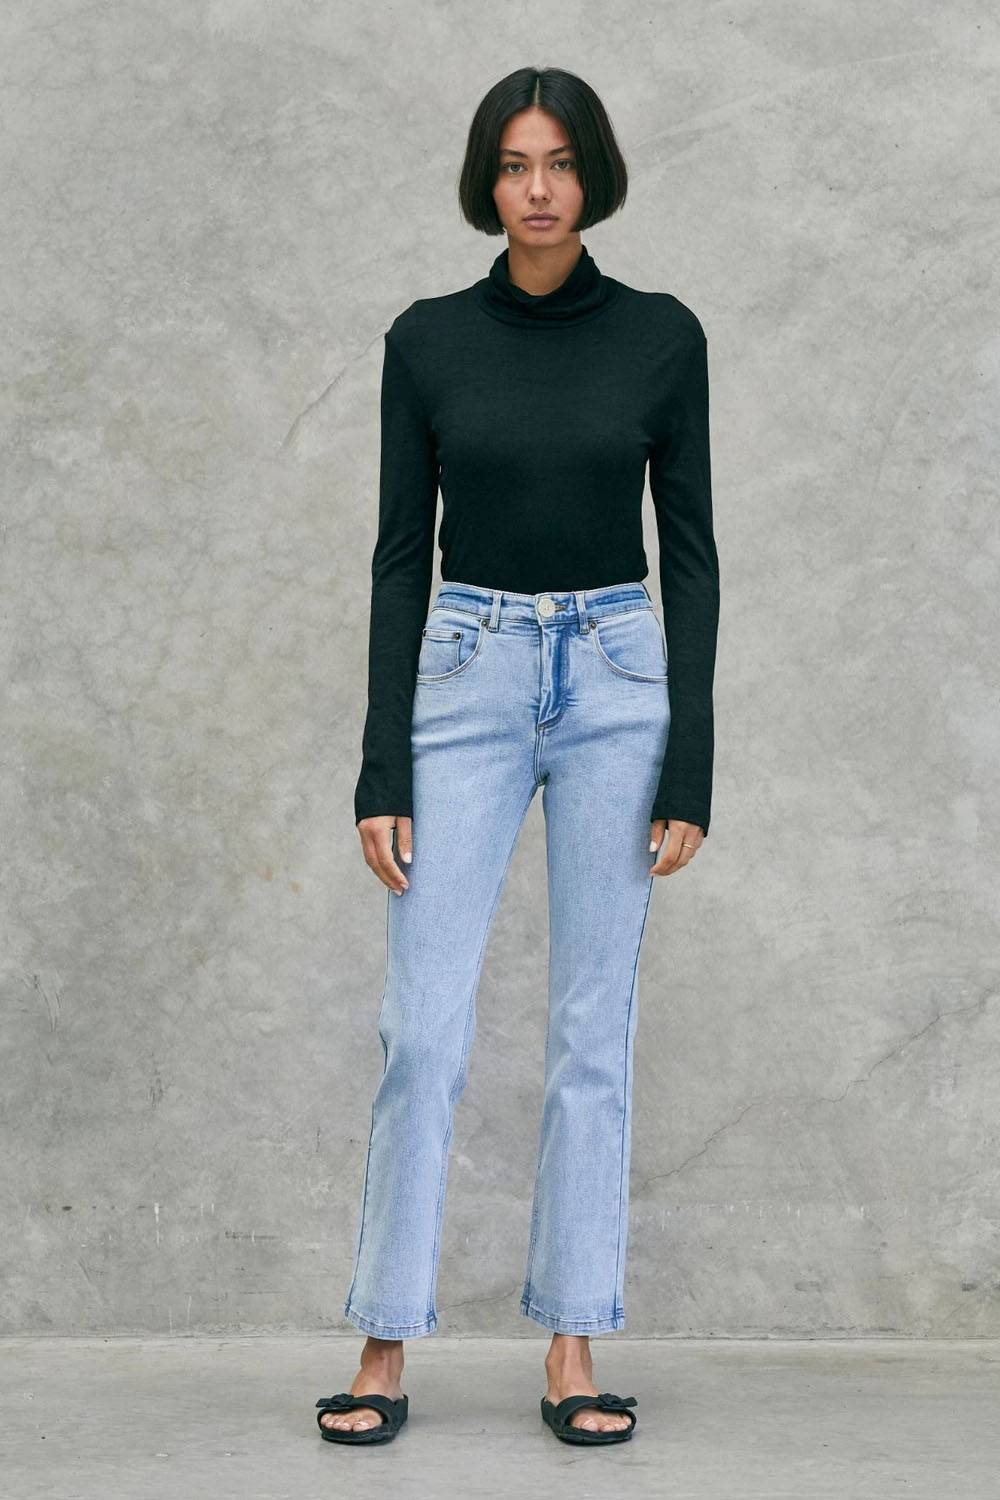 maggie marilyn new zealand jeans